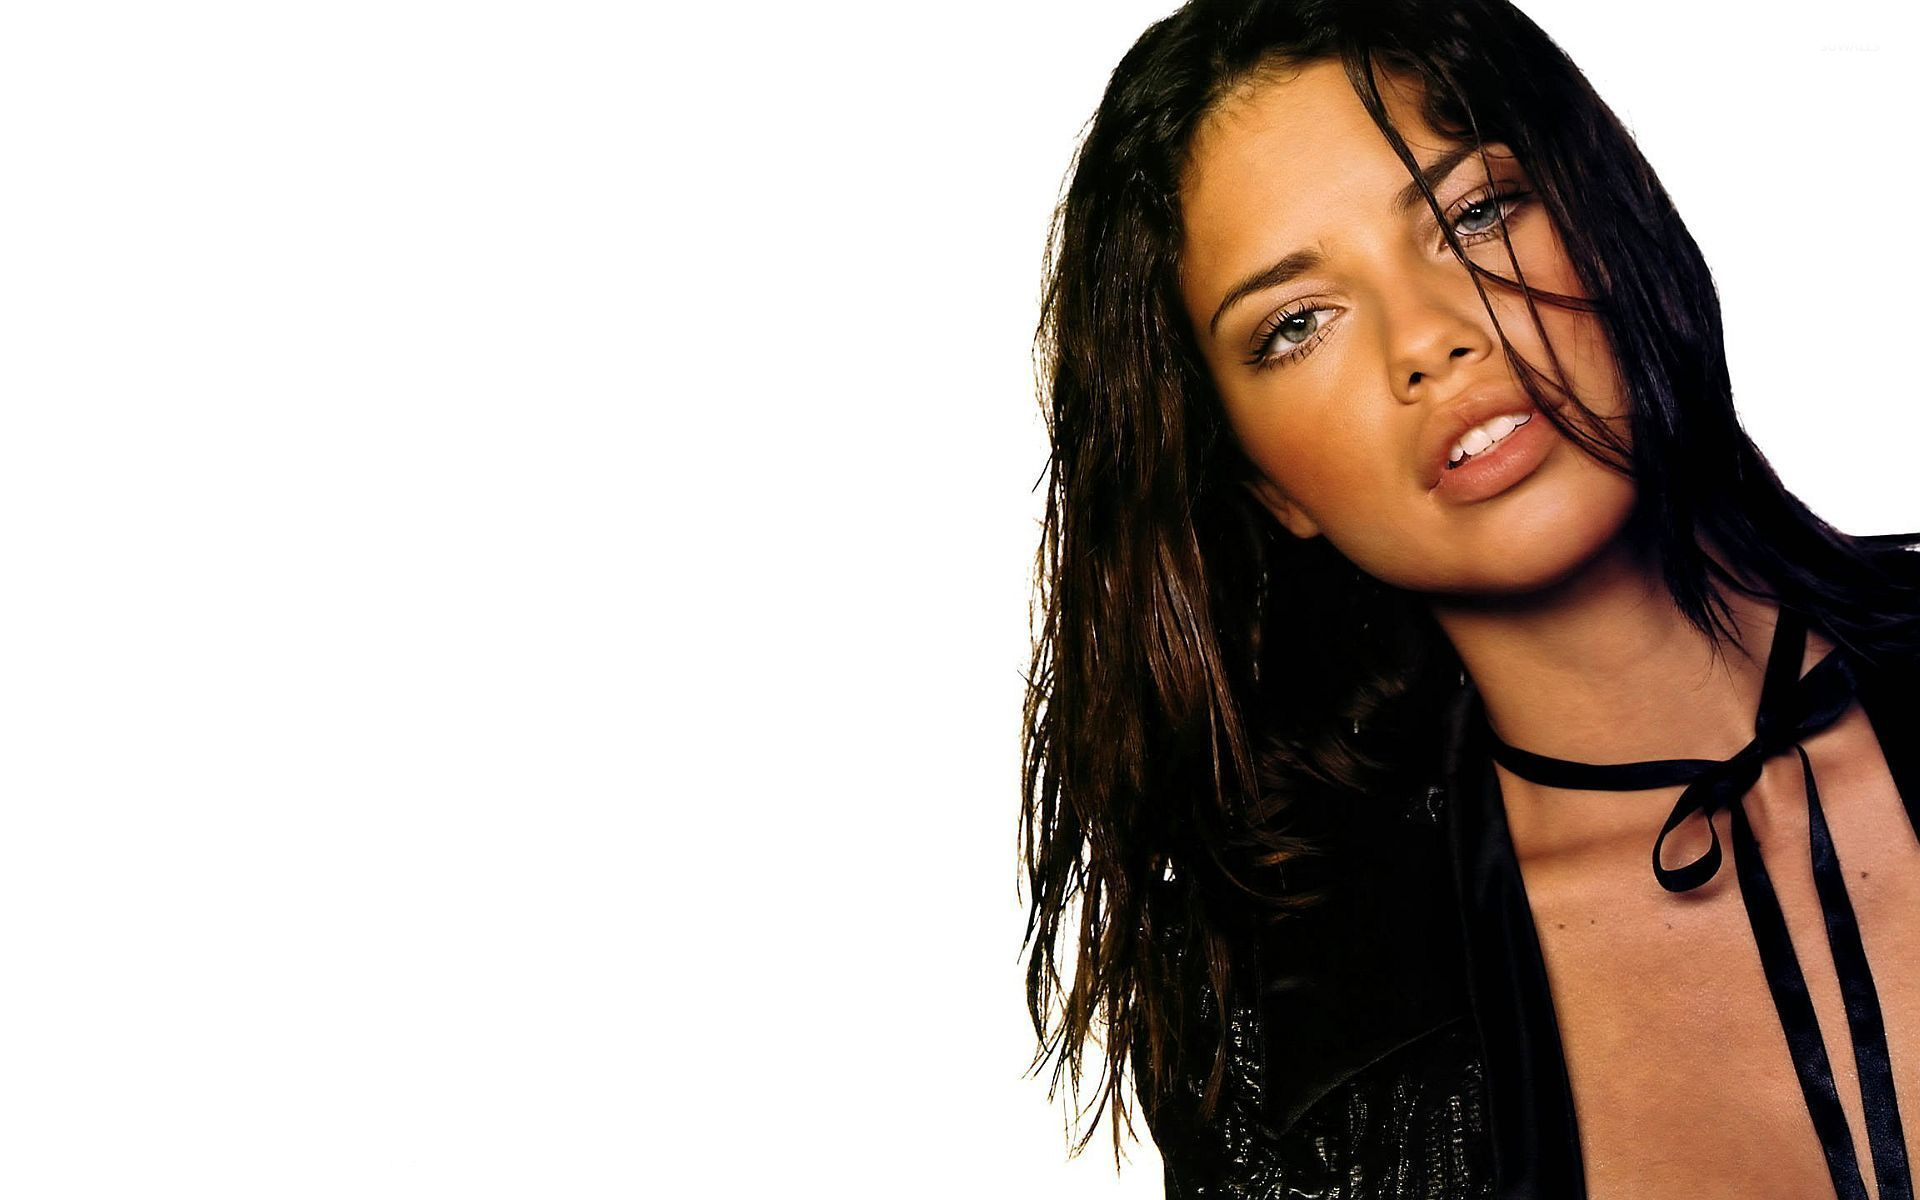 Adriana lima sweet hd wallpaper images hd wallpapers pinterest adriana lima sweet hd wallpaper images voltagebd Image collections